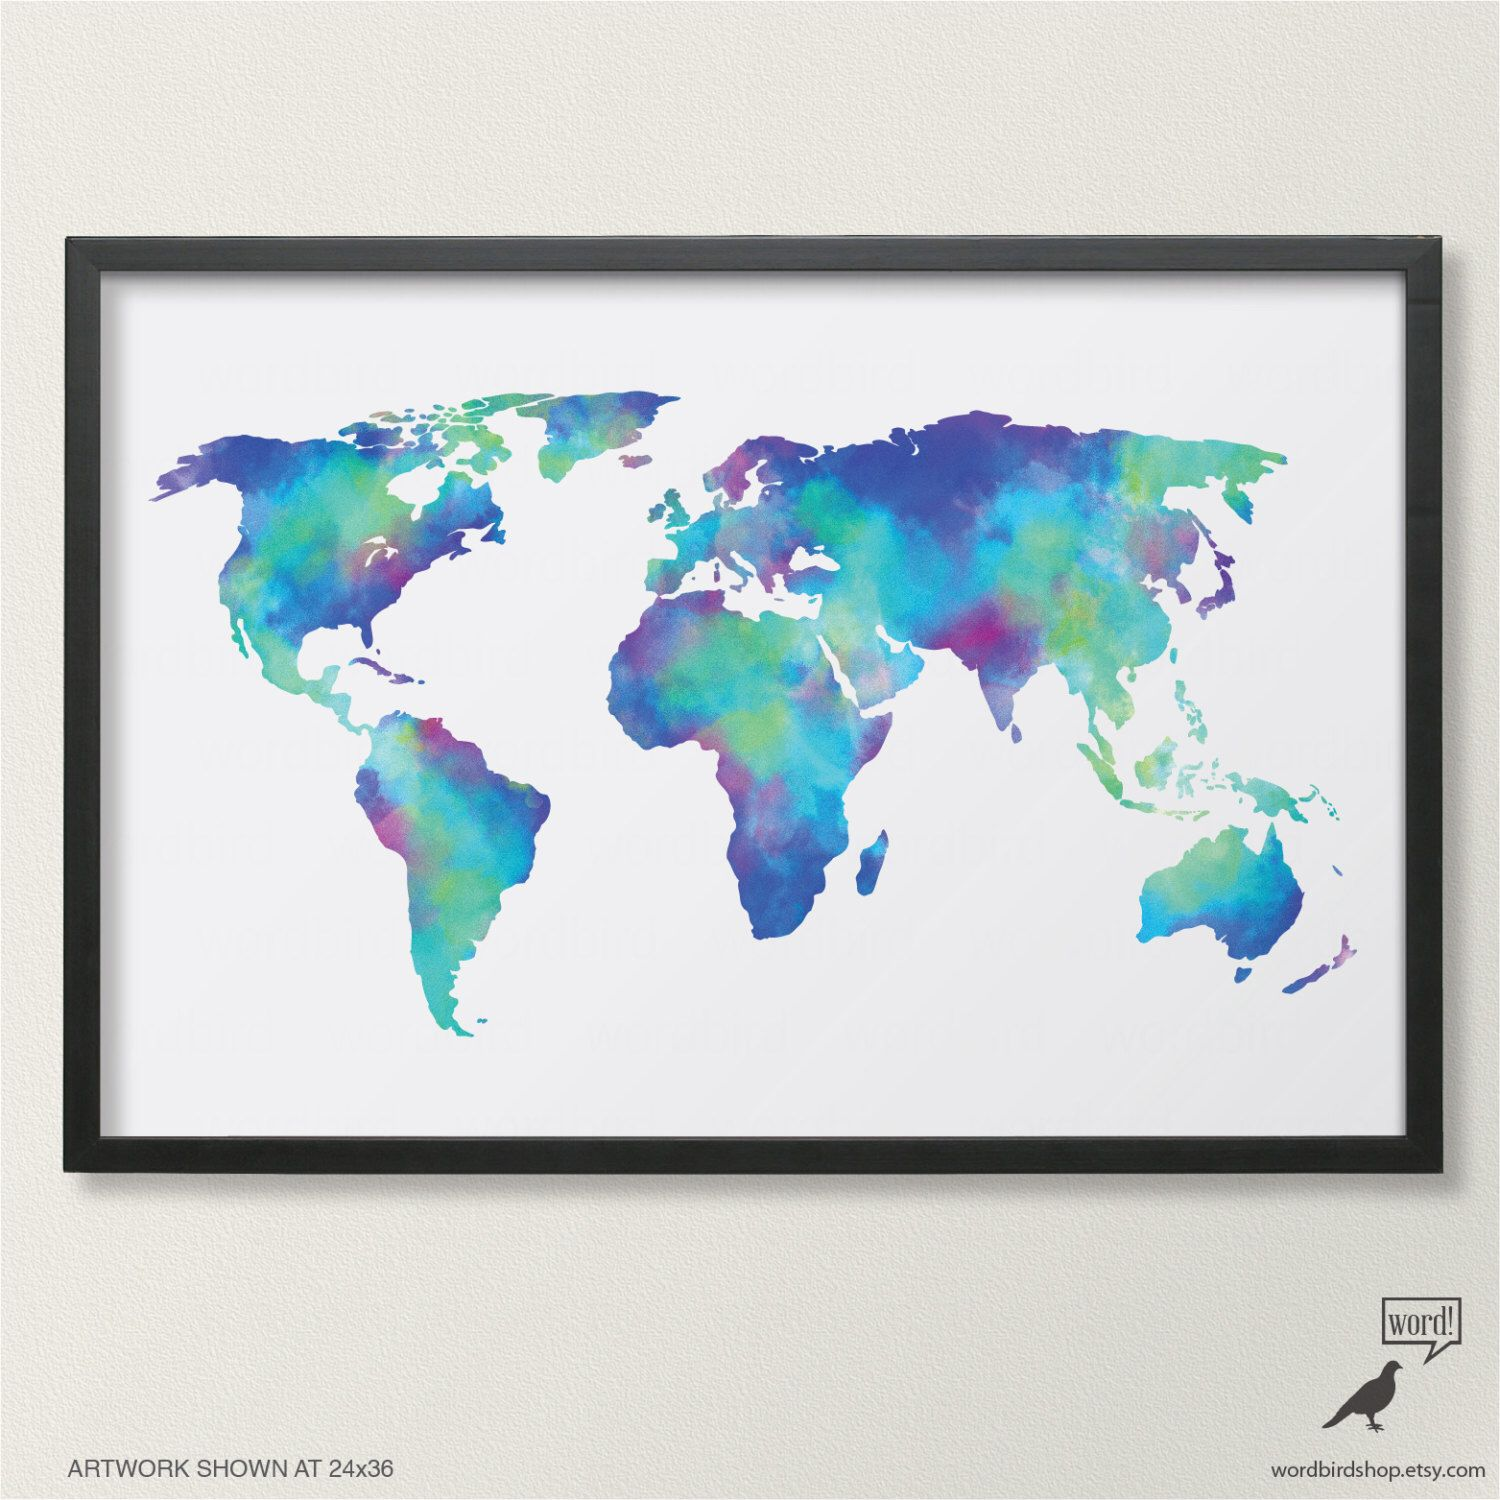 Amazoncom gb eye world map poster posters amp prints dinocrofo here we have selected the best photos amazoncom gb eye world map poster posters amp prints publicscrutiny Choice Image